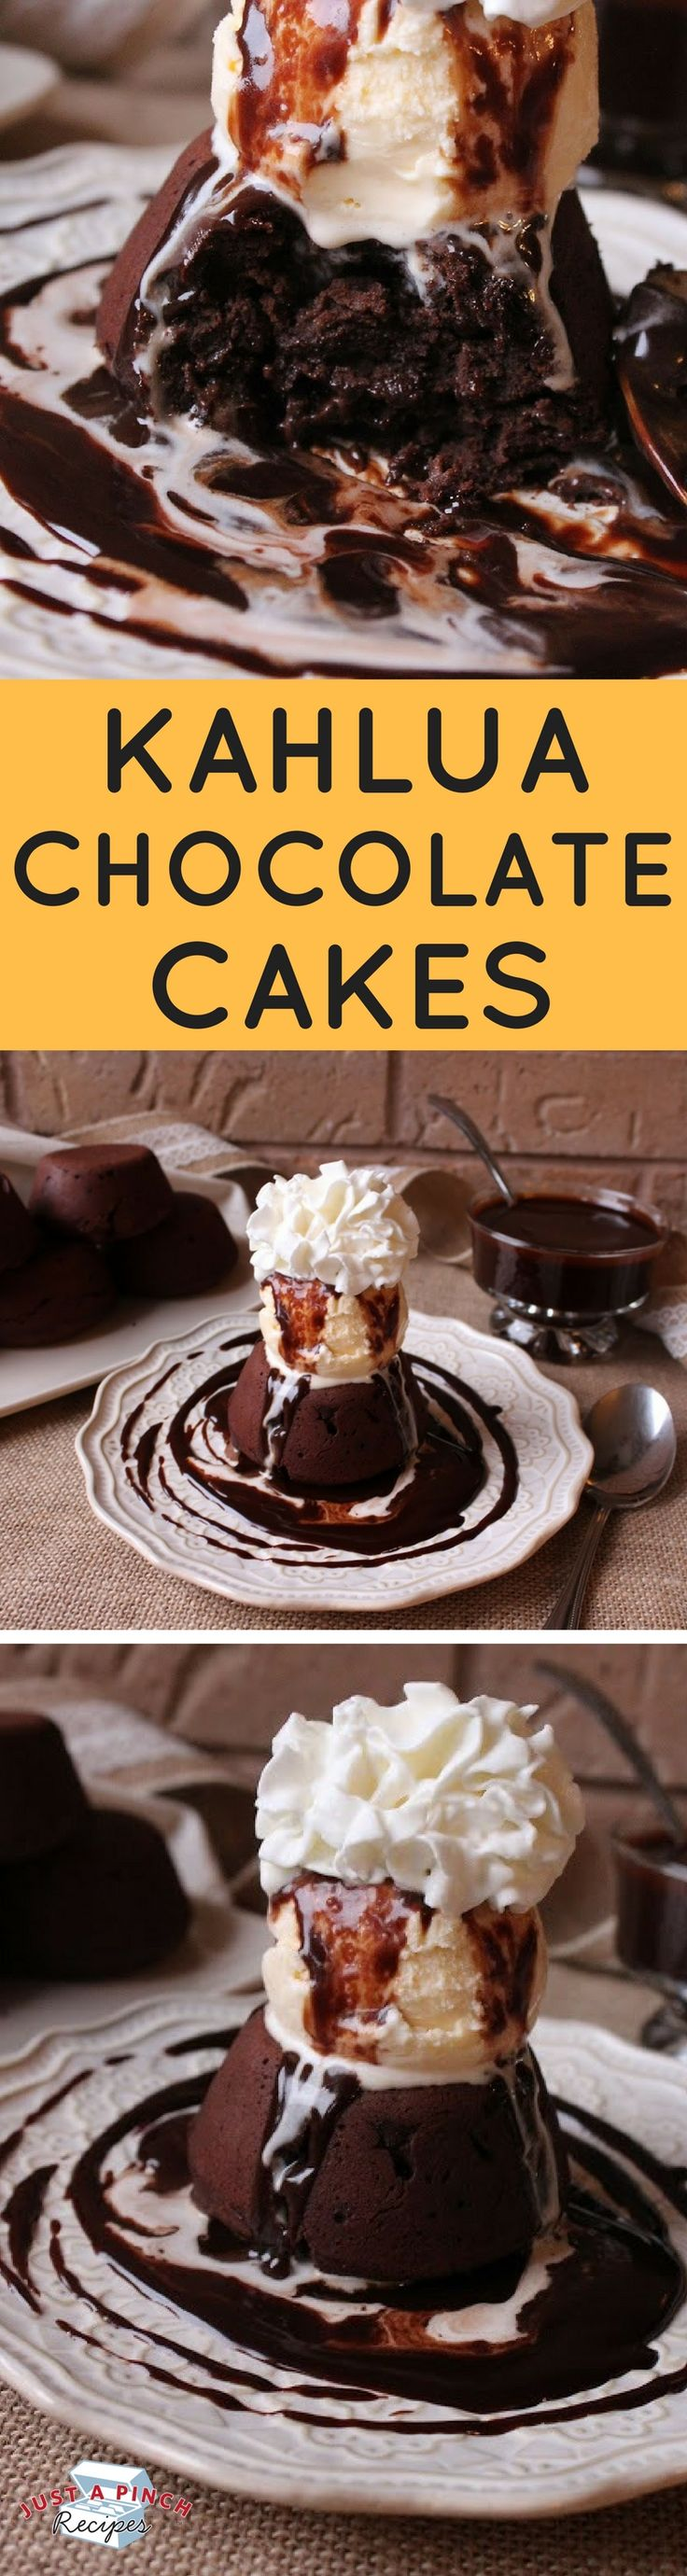 A Kahlua and chocolate lovers dream recipe! The cake's warm, ooey, gooey chocolate with a slight hint of Kahlua. Ice cream and chocolate sauce on top send this over the top.